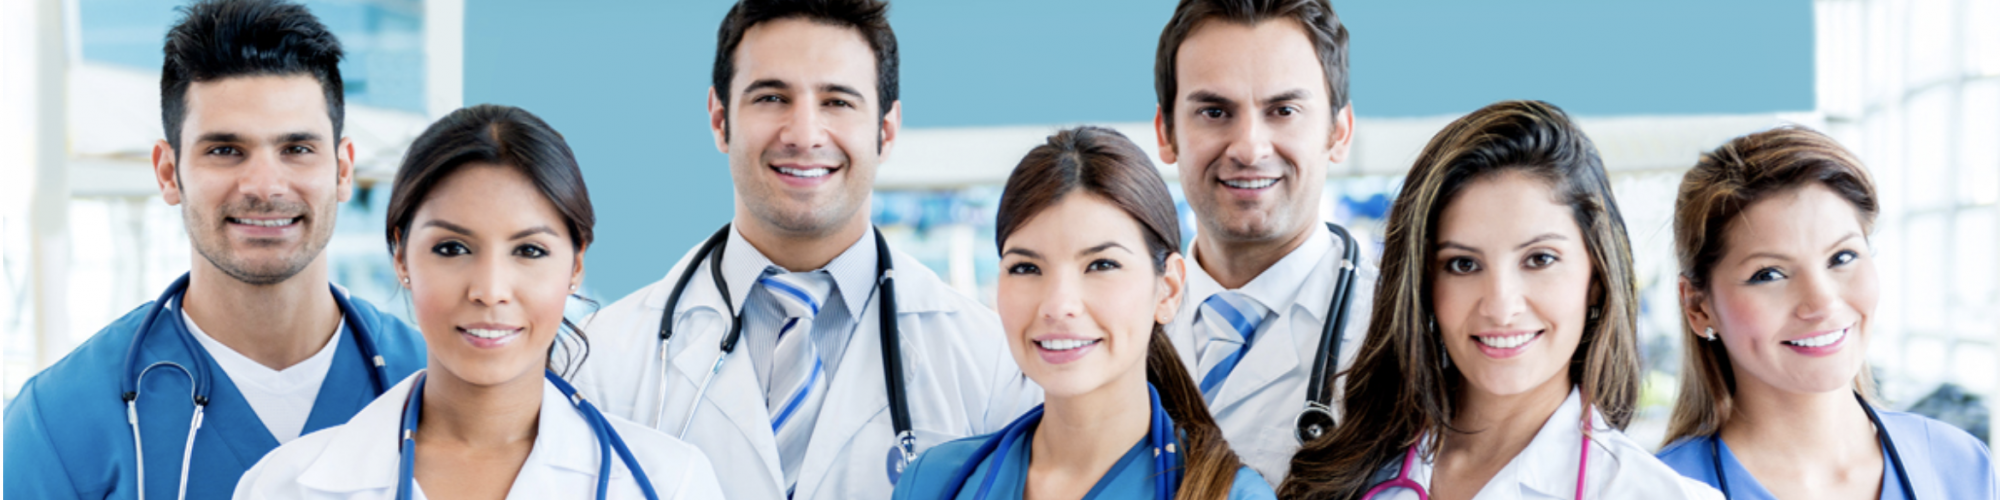 Aaxiom Healthcare Staffing